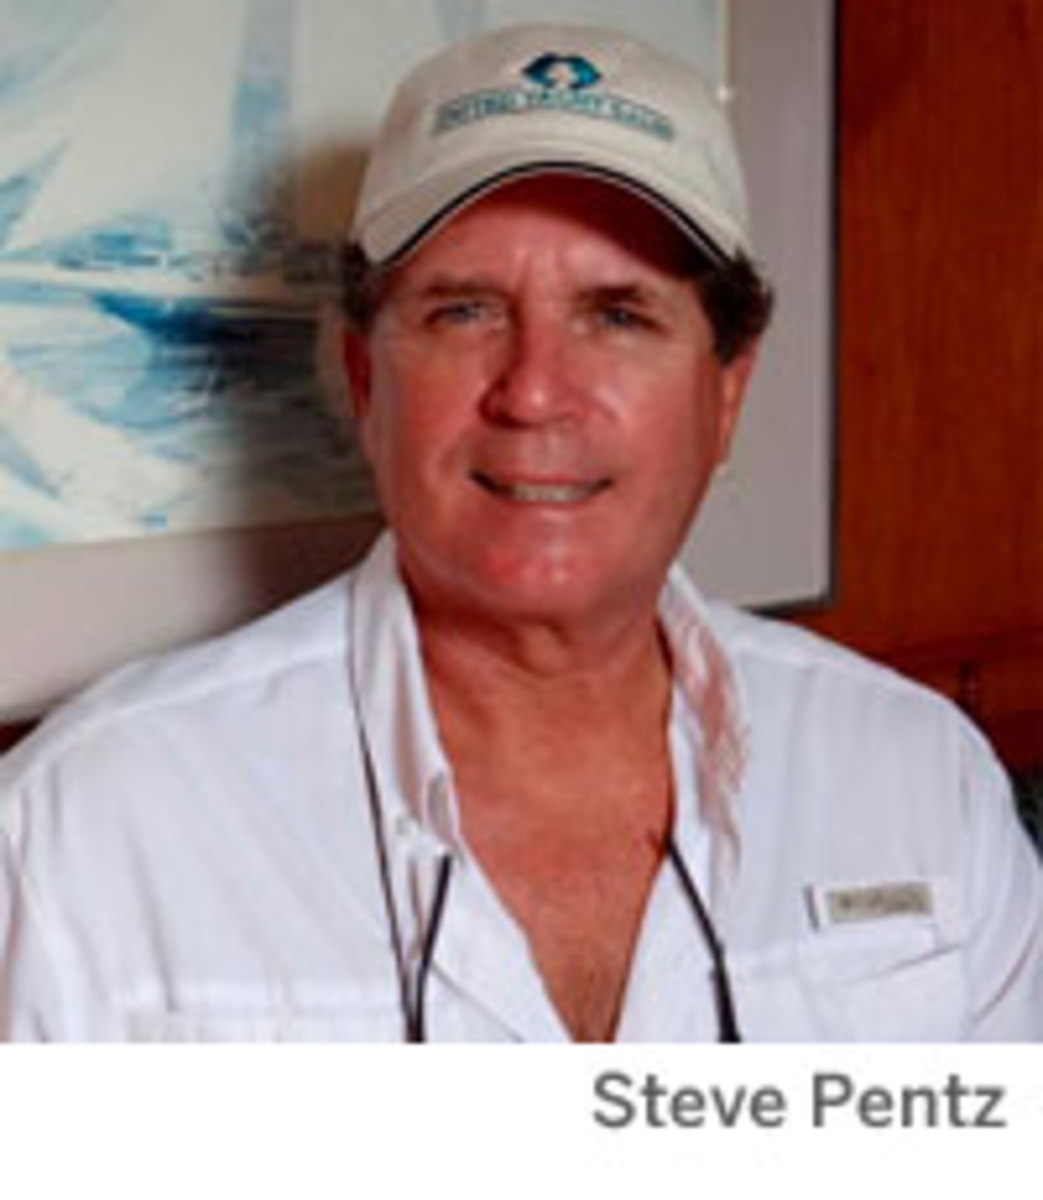 Steve Pentz of United Yacht Sales